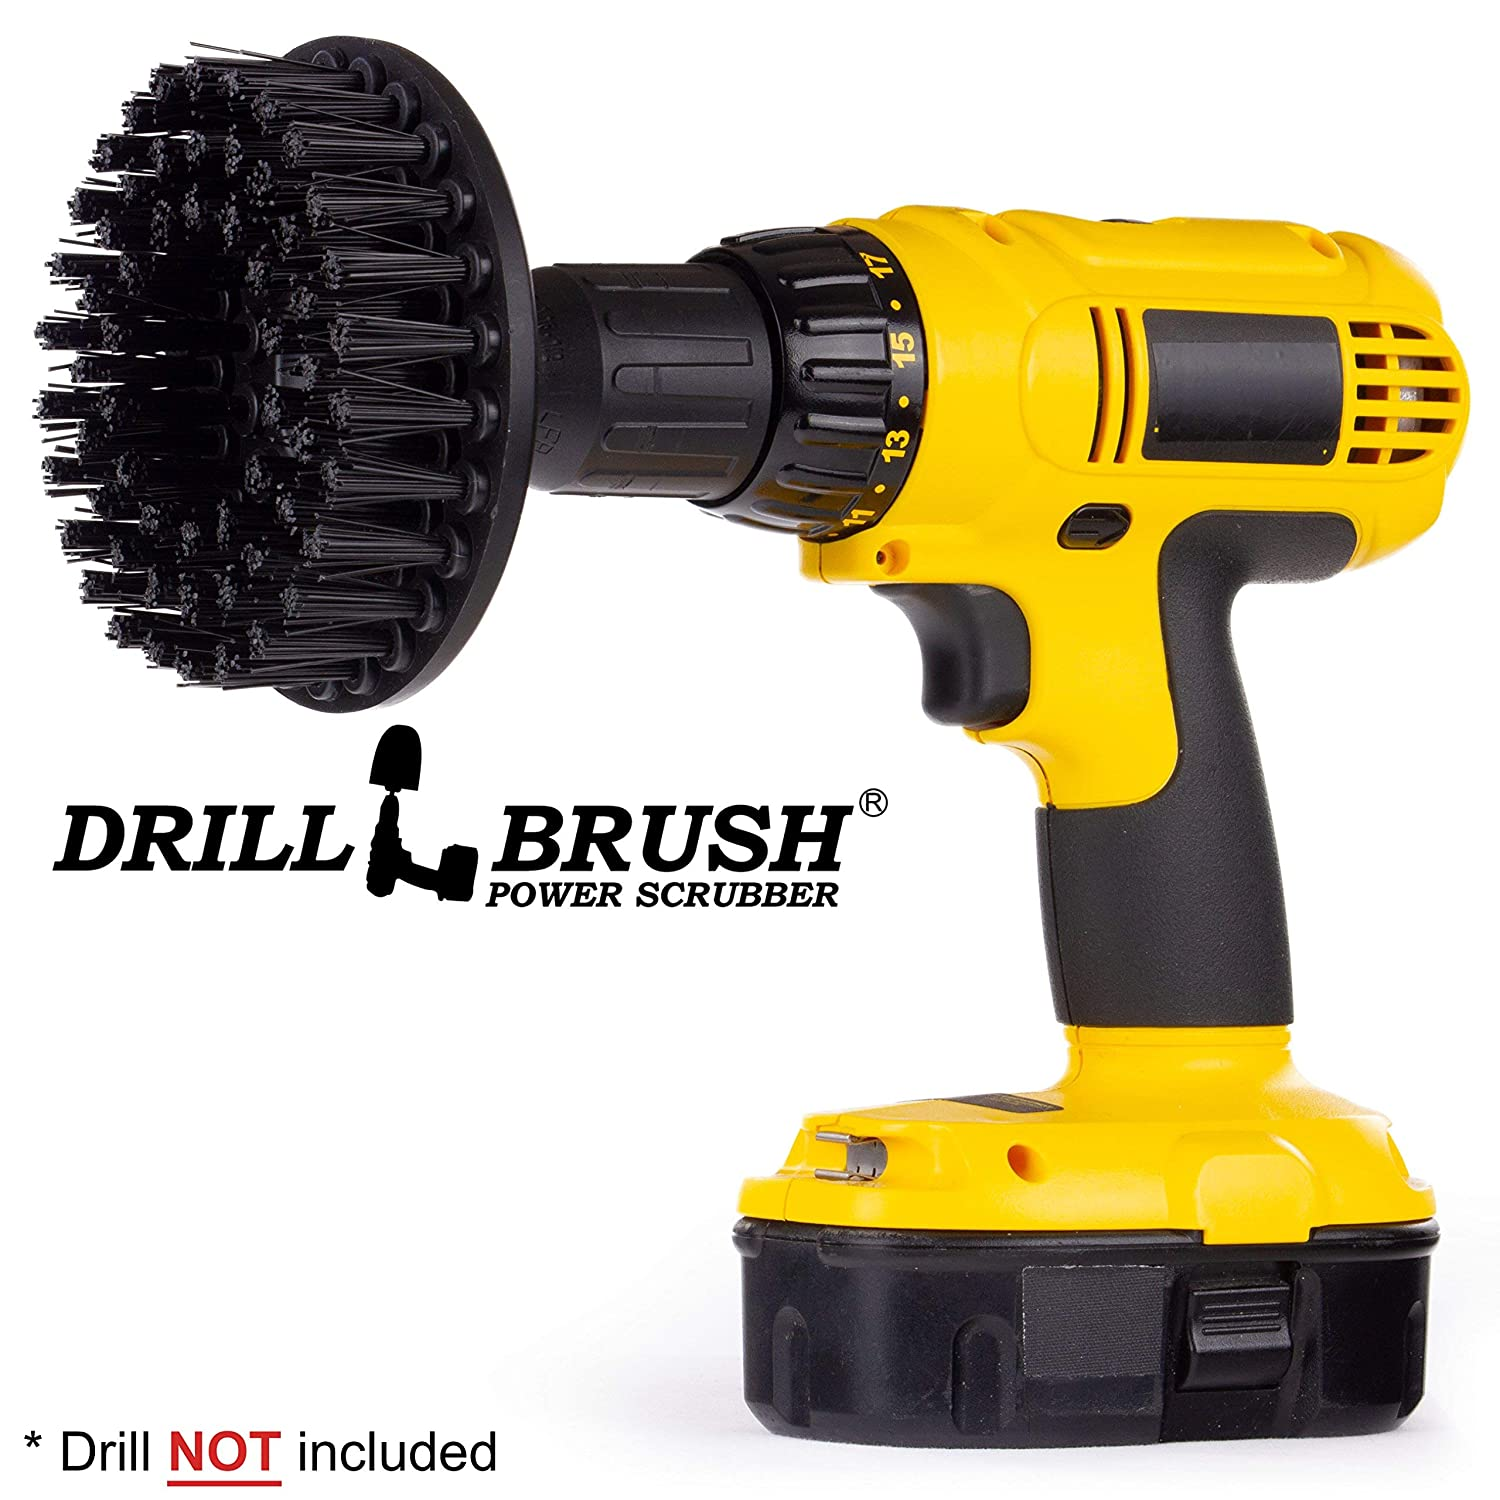 Wire Brush Alternative. 5 Inch Round Black Ultra-stiff Masonry and Bricklayer brush for Rust Stain Removal, Granite, and Stone Cleaning by Drillbrush 5in-S-K-H-DB